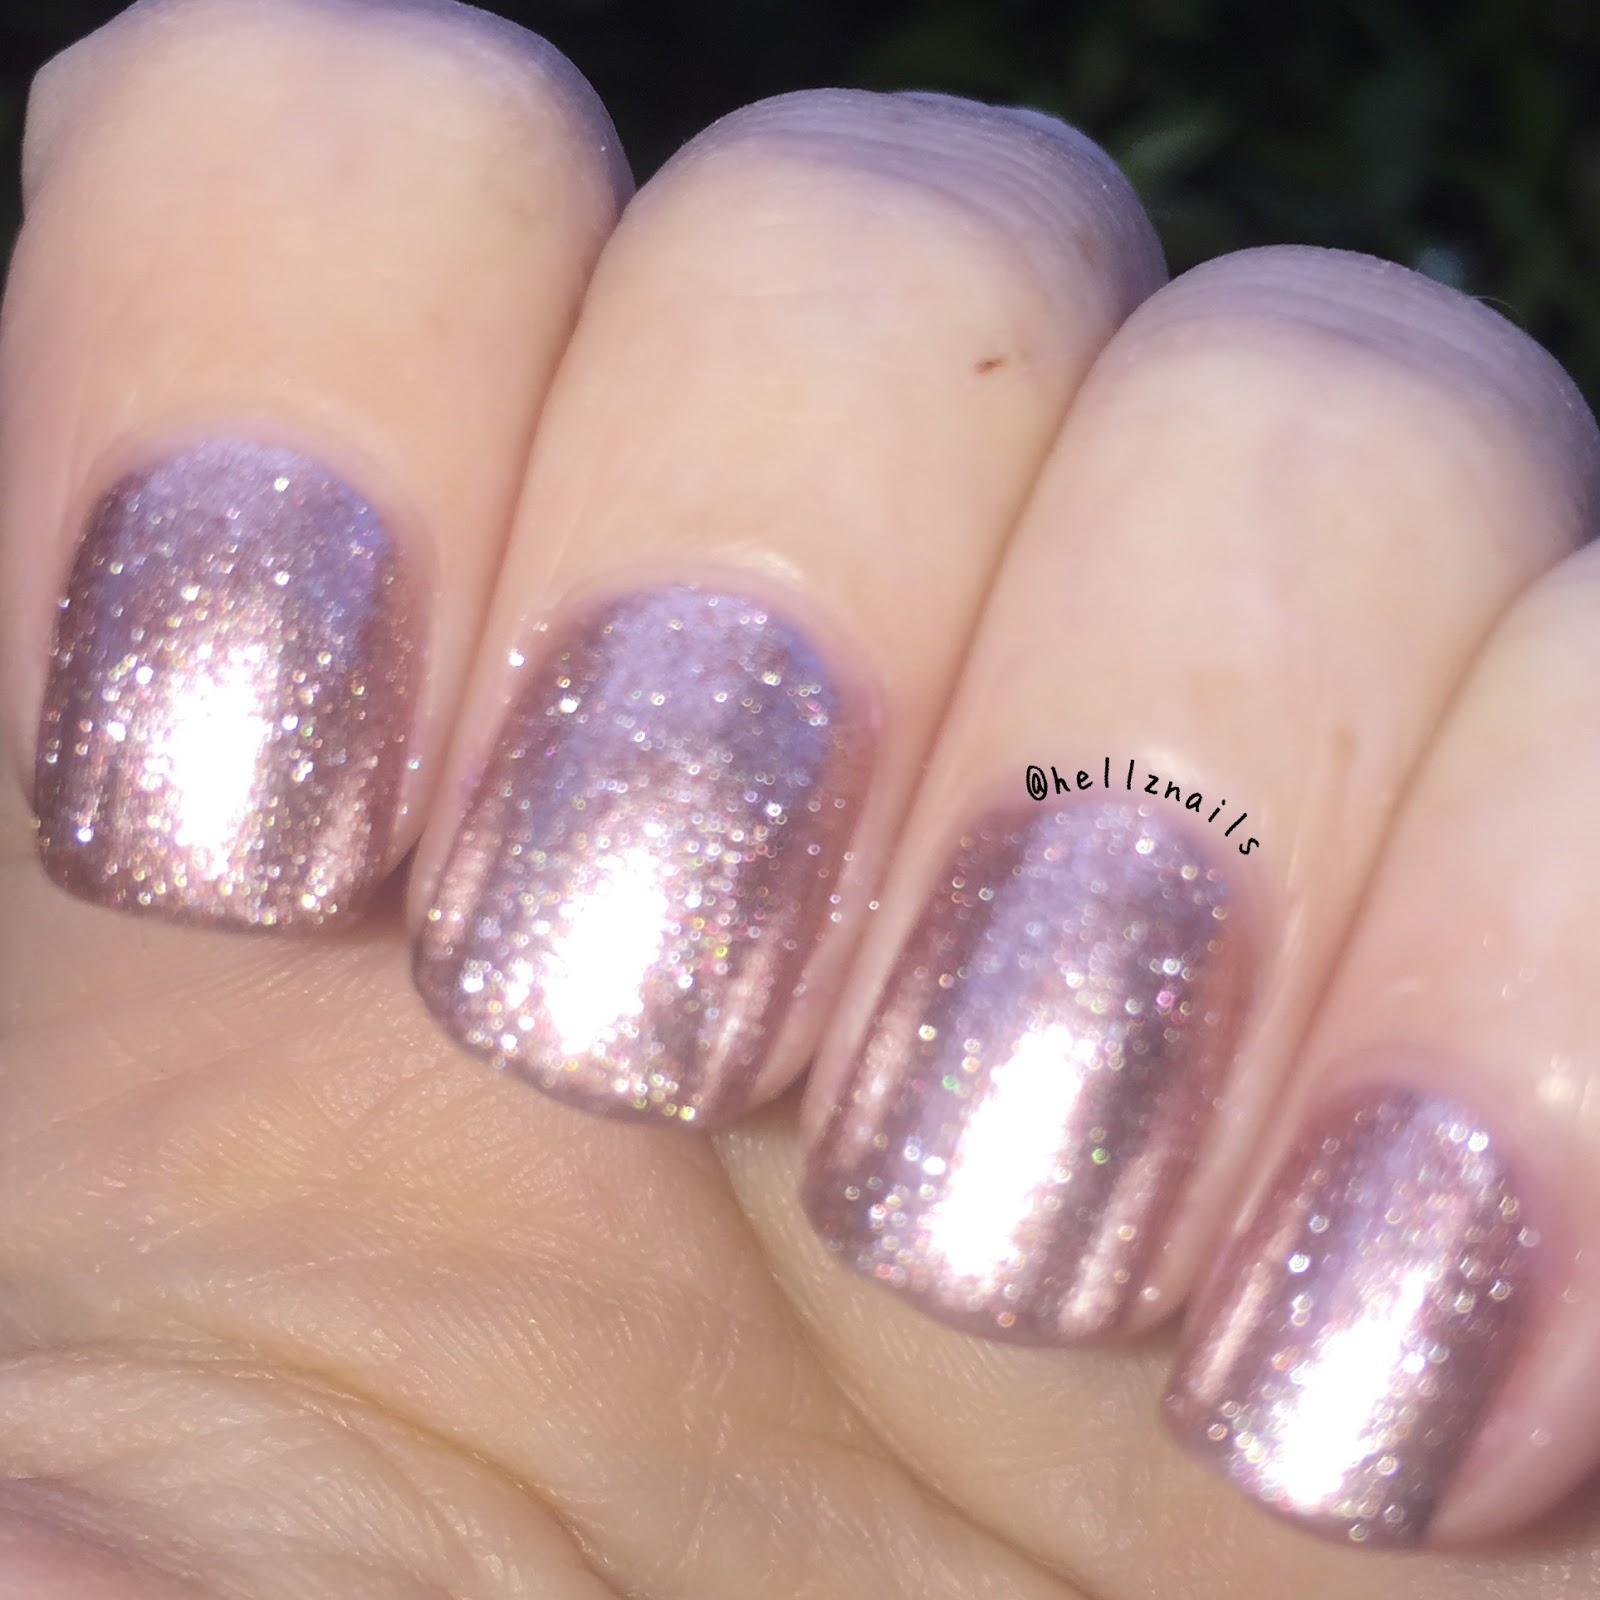 Awesome Gel Nail Polish Remover Superdrug Ideas - Nail Art Design ...